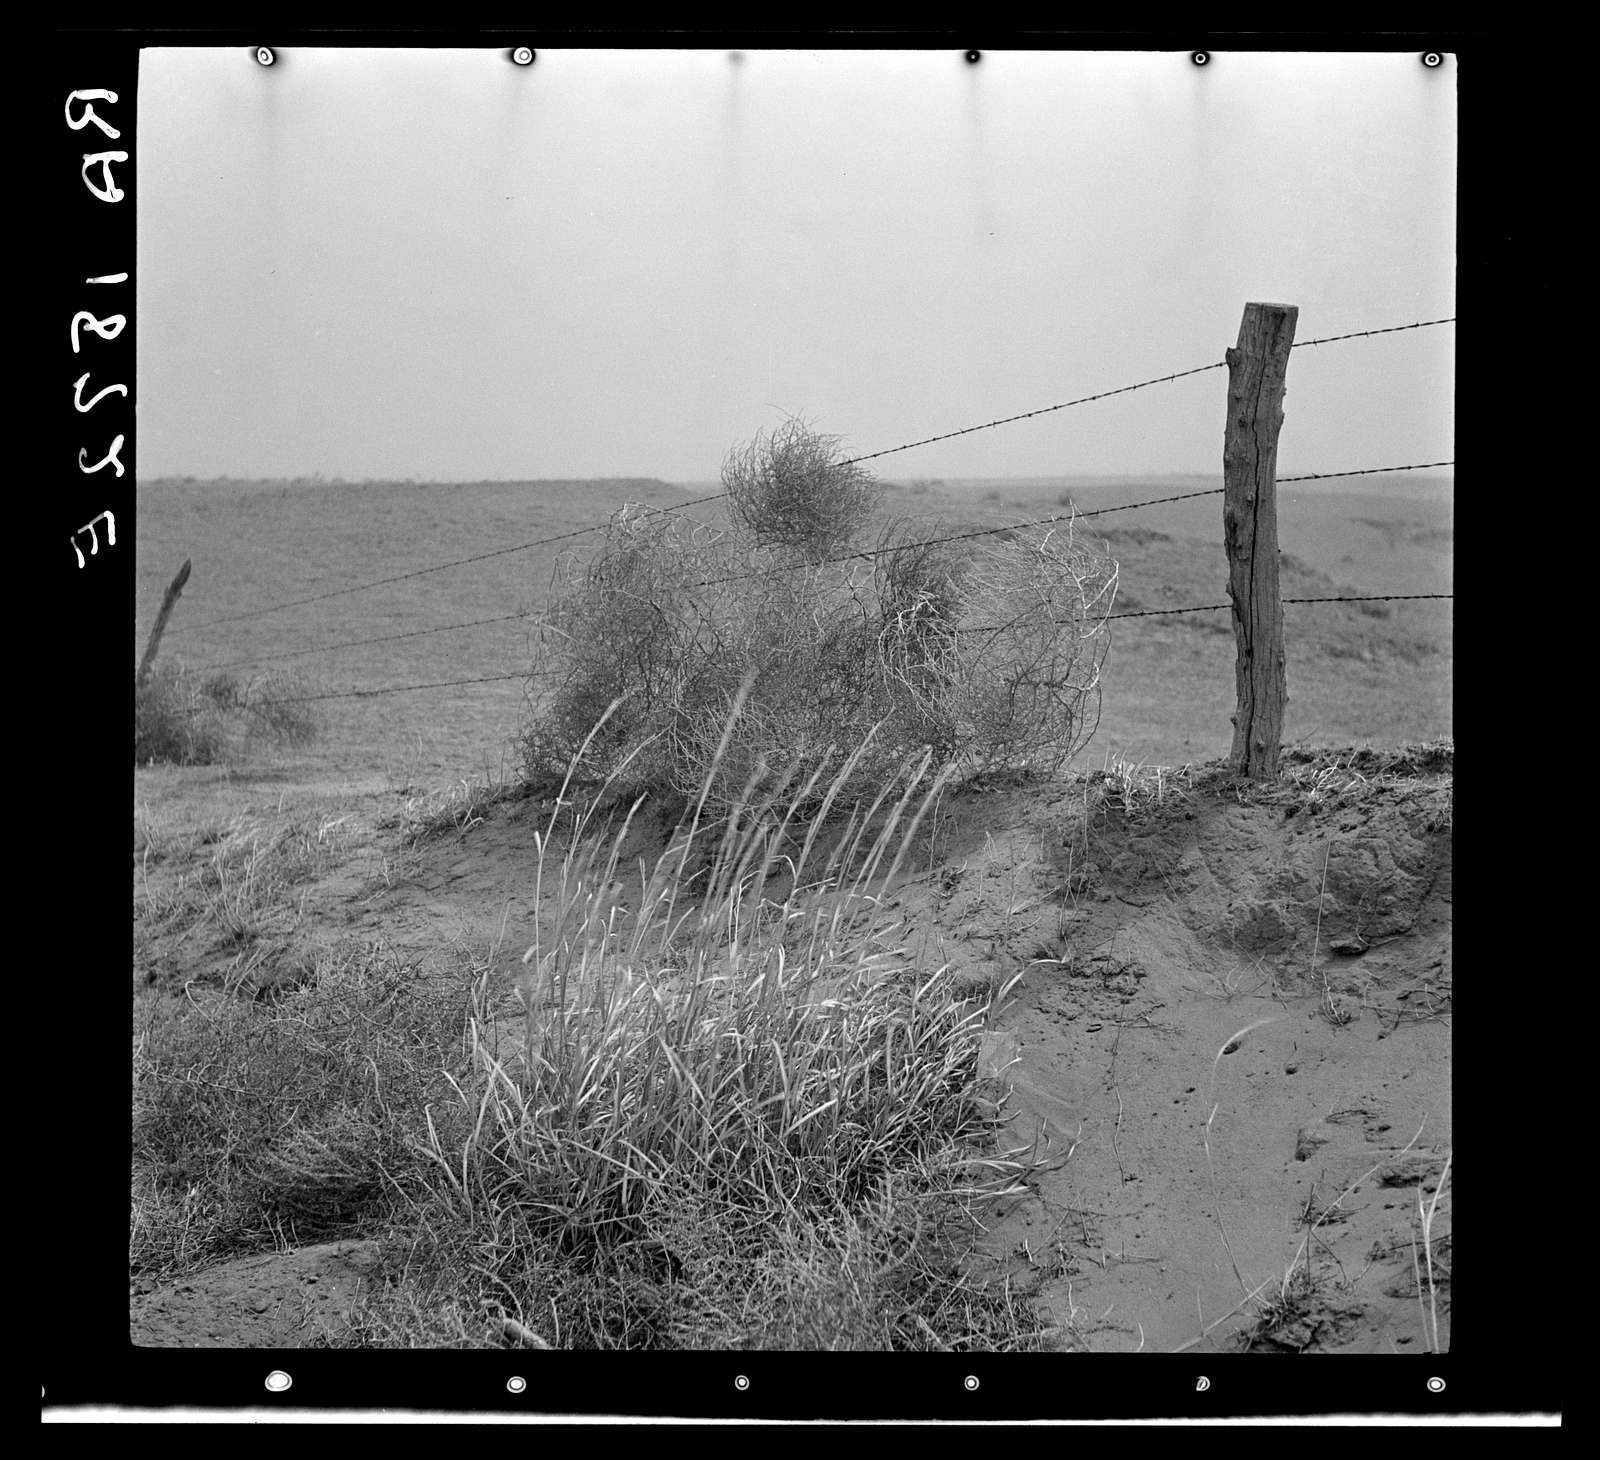 Tumbleweeds caught on a barbed wire fence. Ford County, Kansas